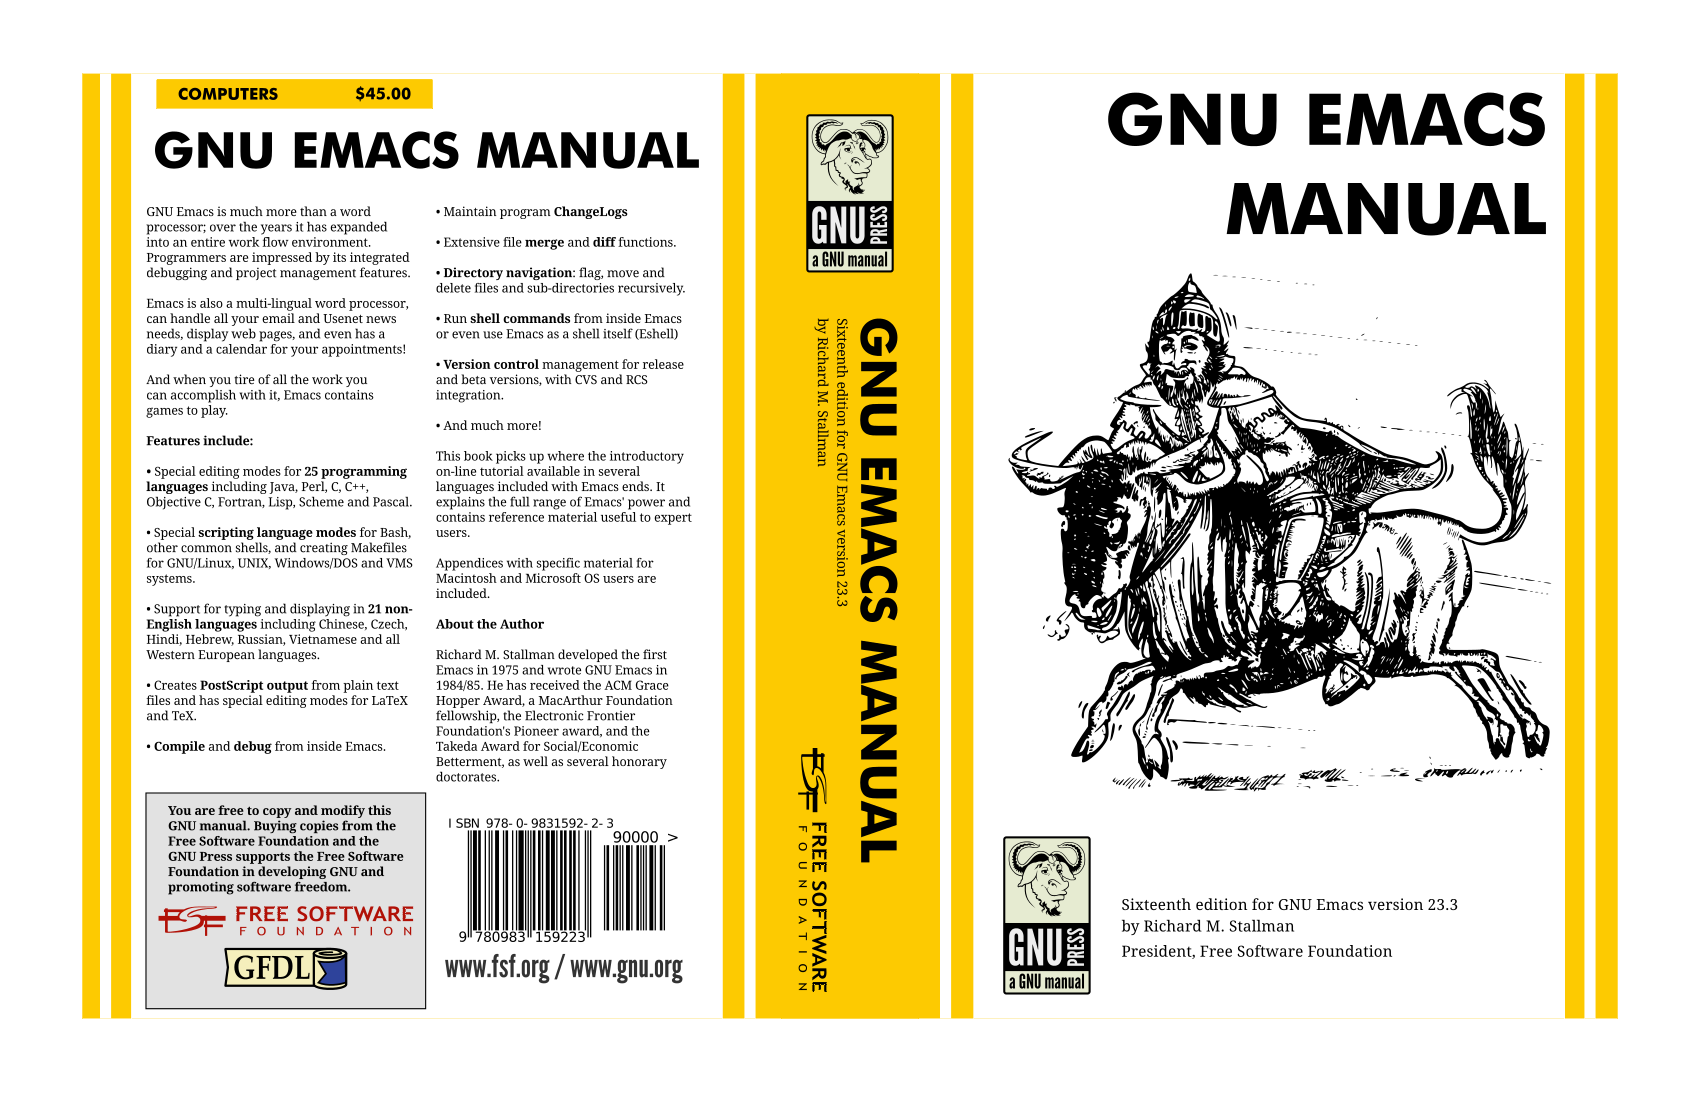 a printed version of gnu emacs manual 24 3 emacs rh reddit com gnu emacs 24.5 reference manual pdf GNU Emacs Riced